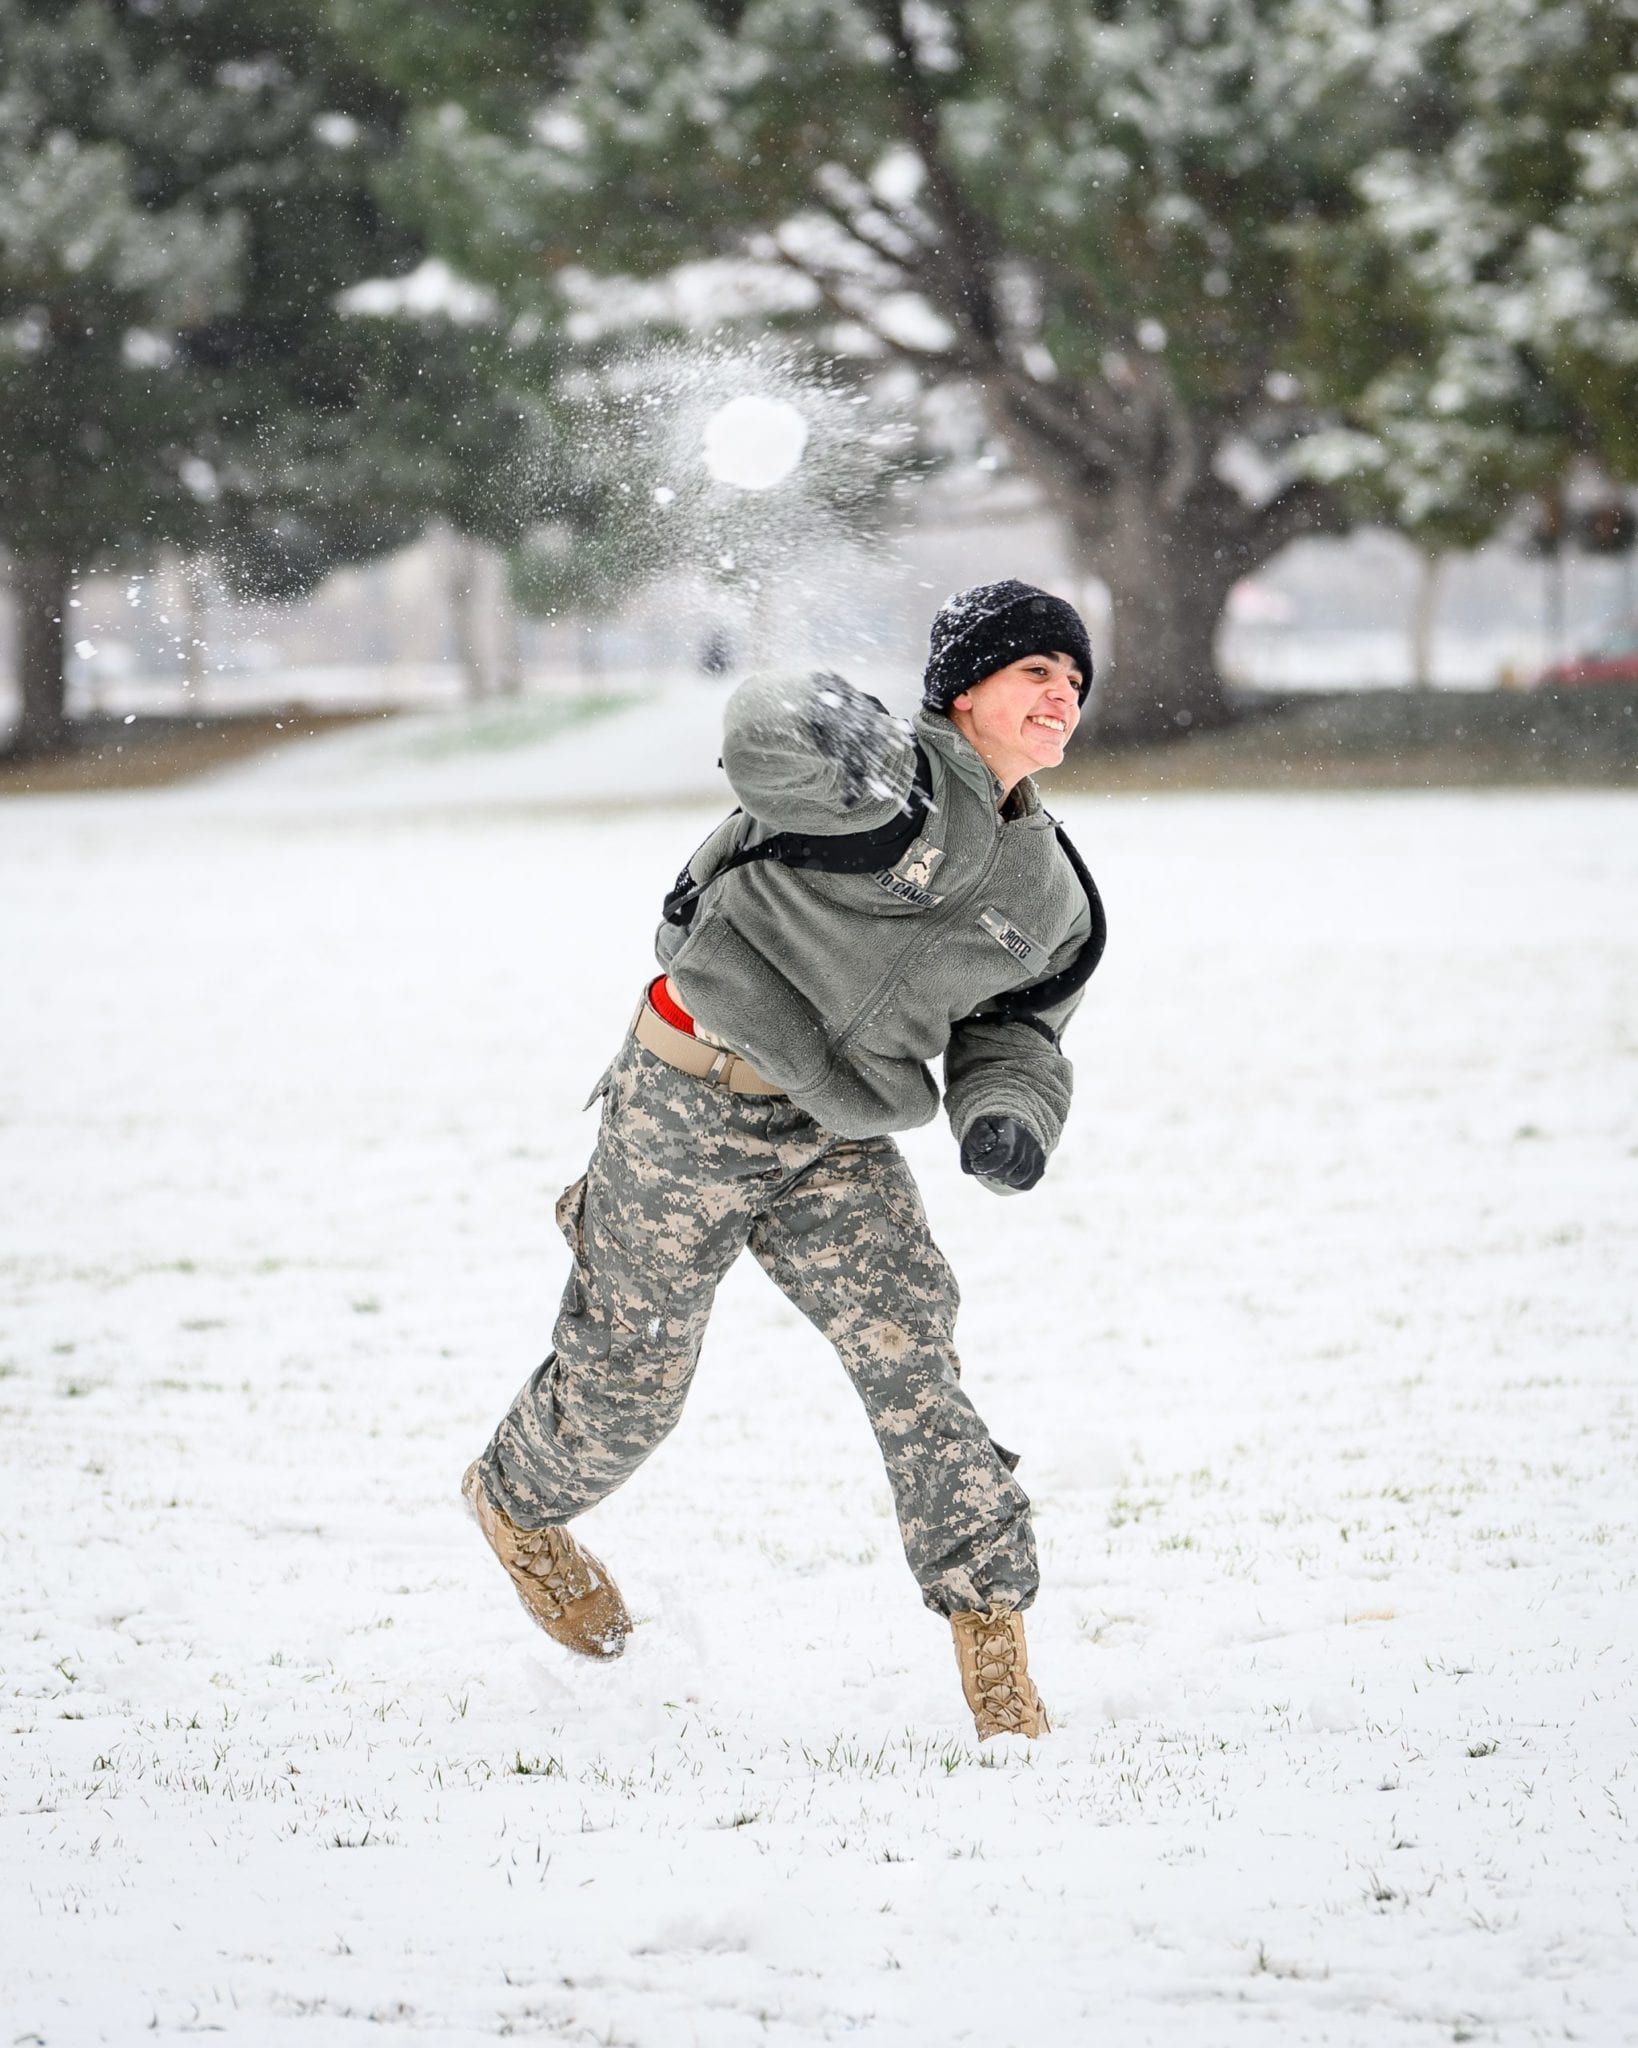 cadet throwing snowball